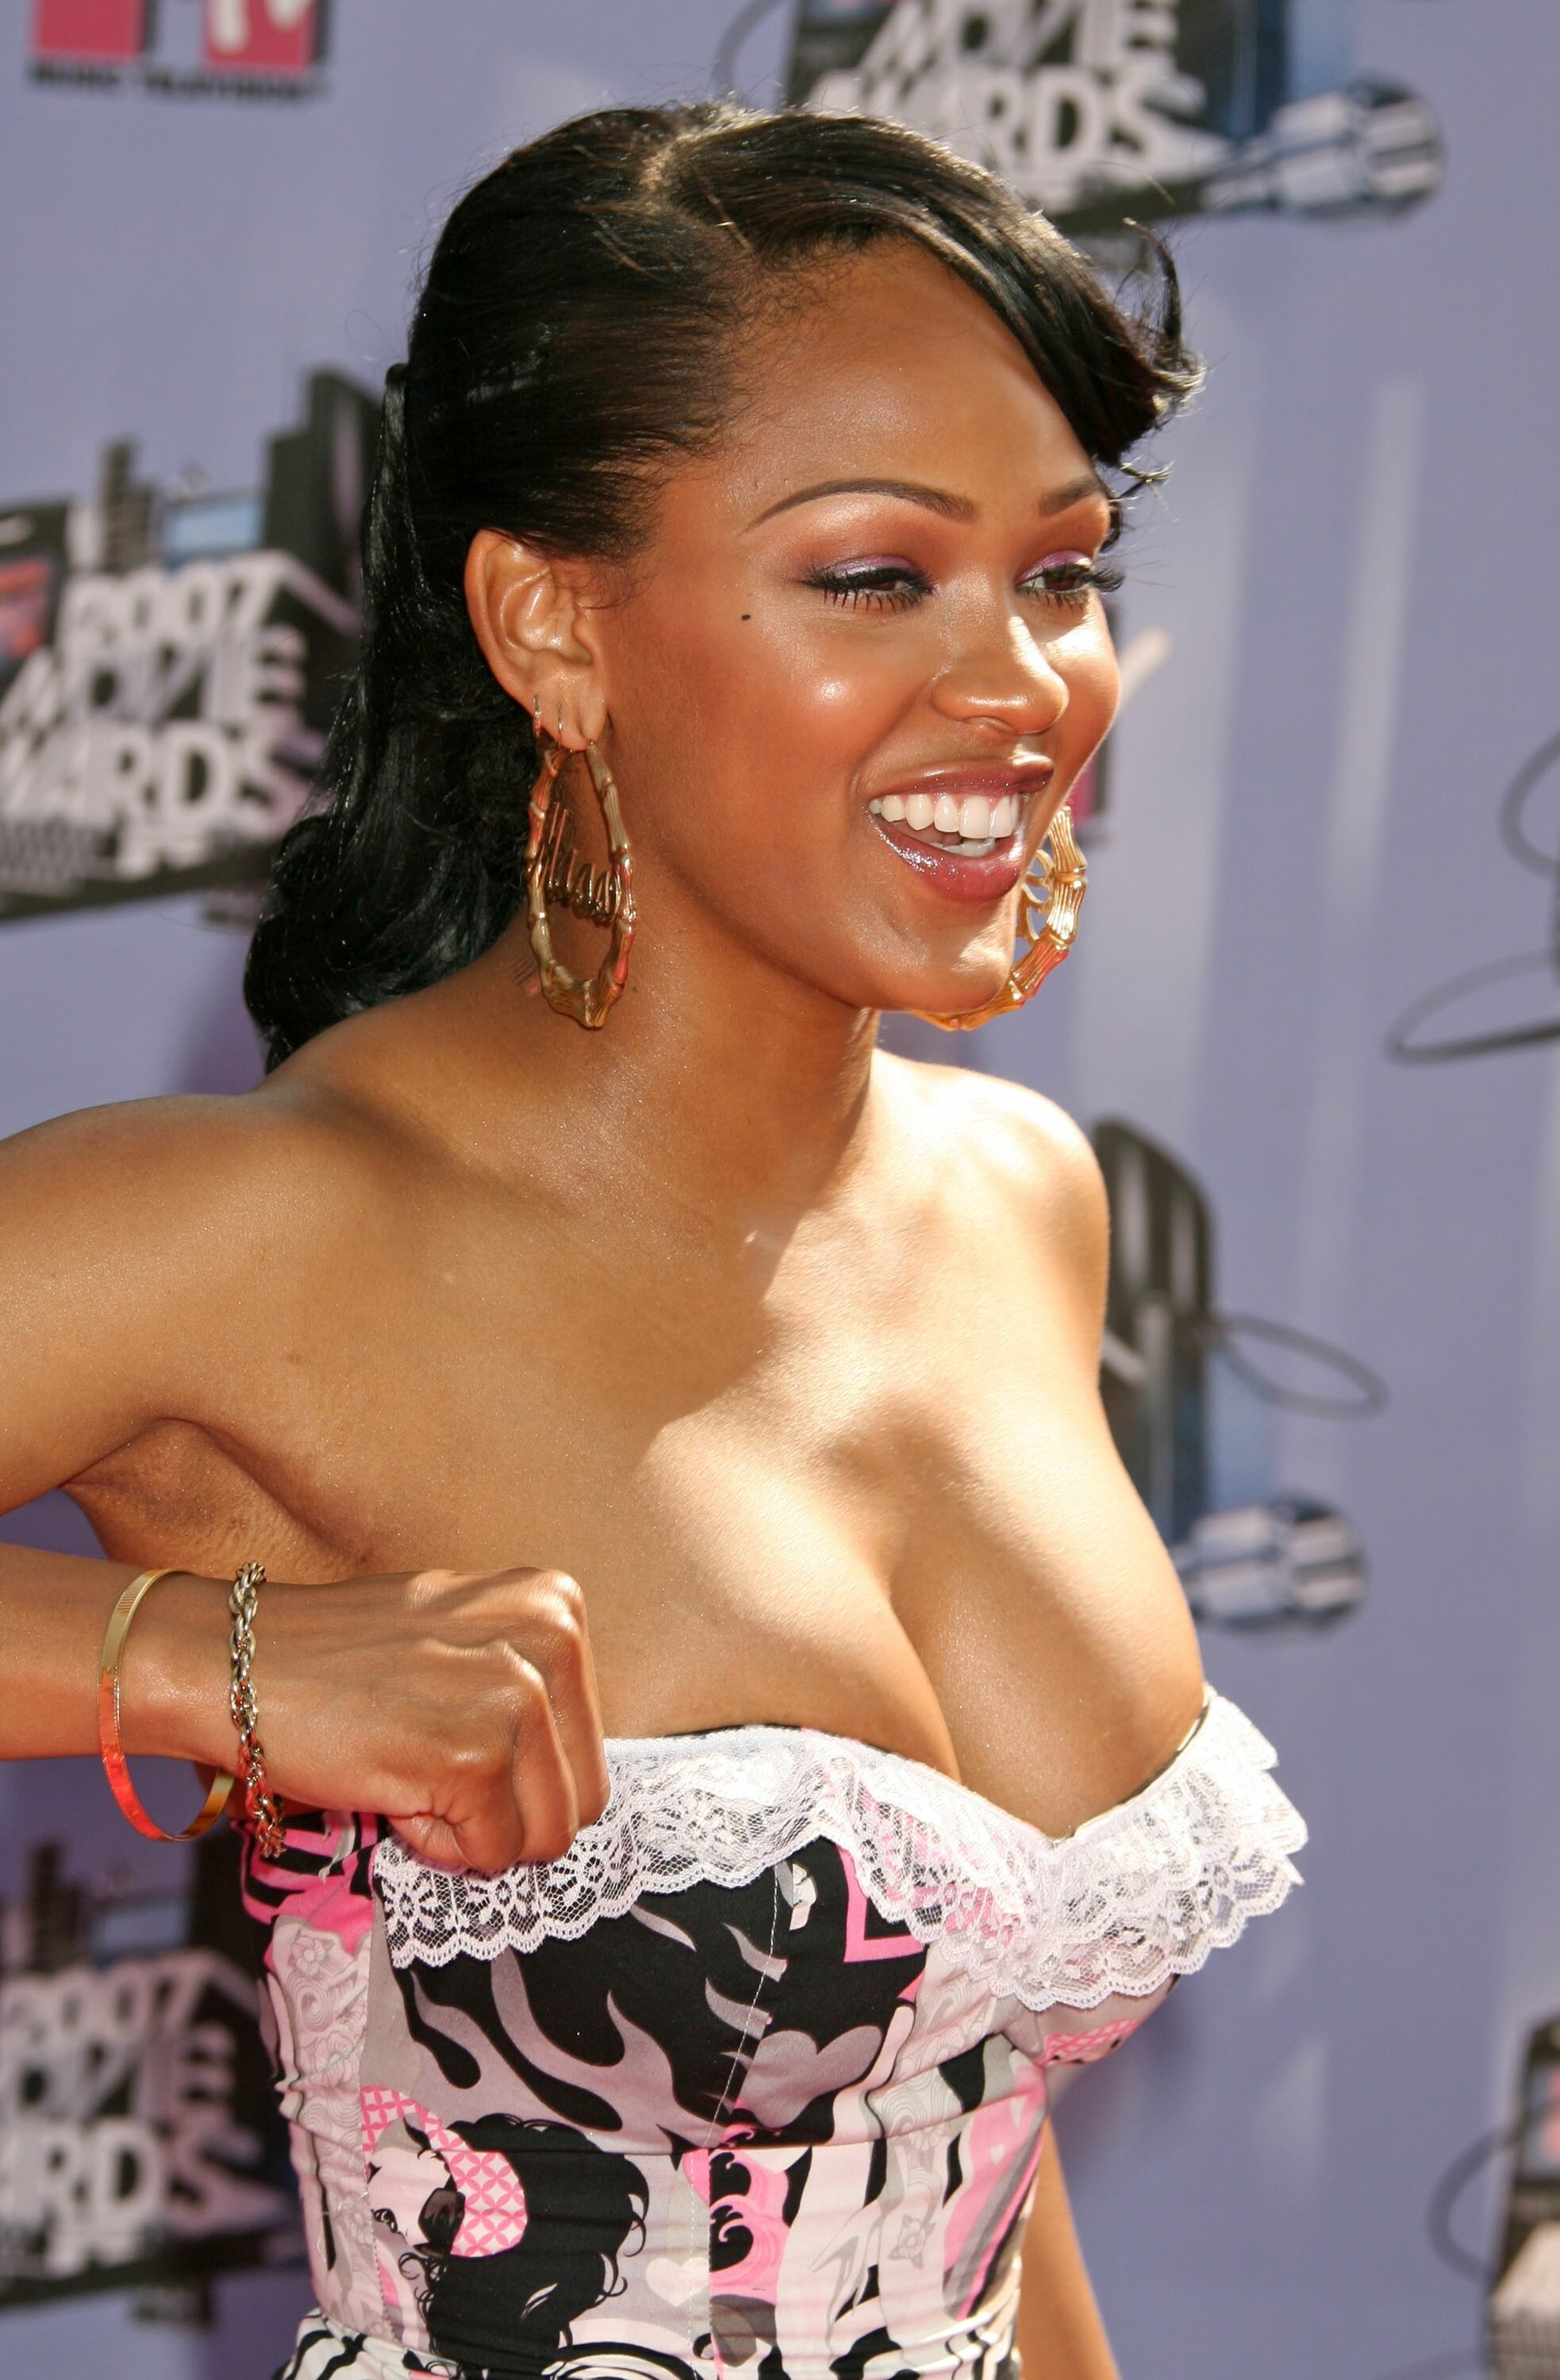 Meagan Good Porn And Nudes Leaked! photo 19